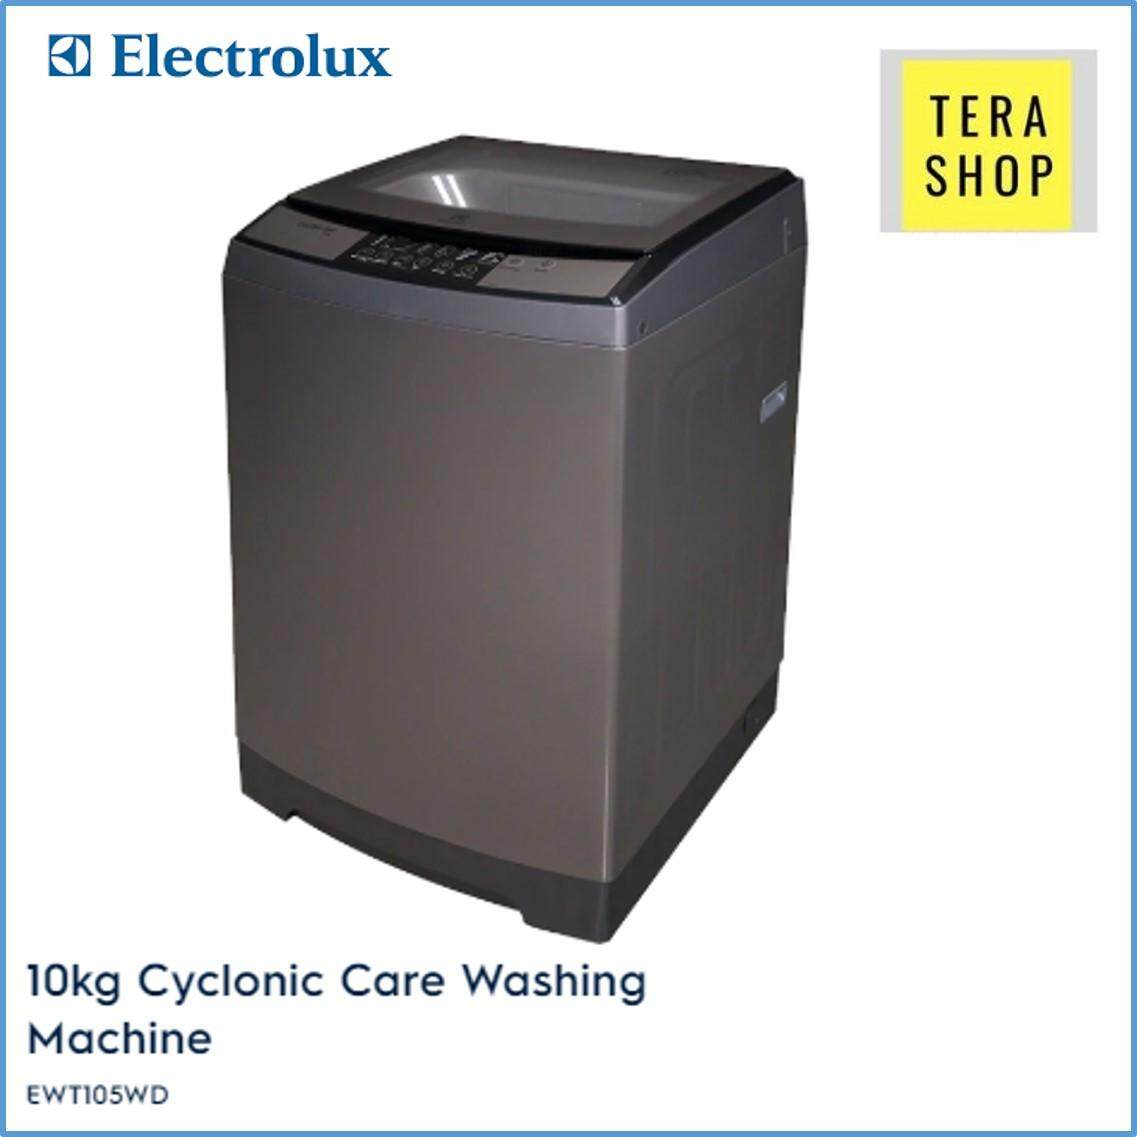 Electrolux Top Load 10kg Washing Machine EWT105WD Inverter Cyclonic Care